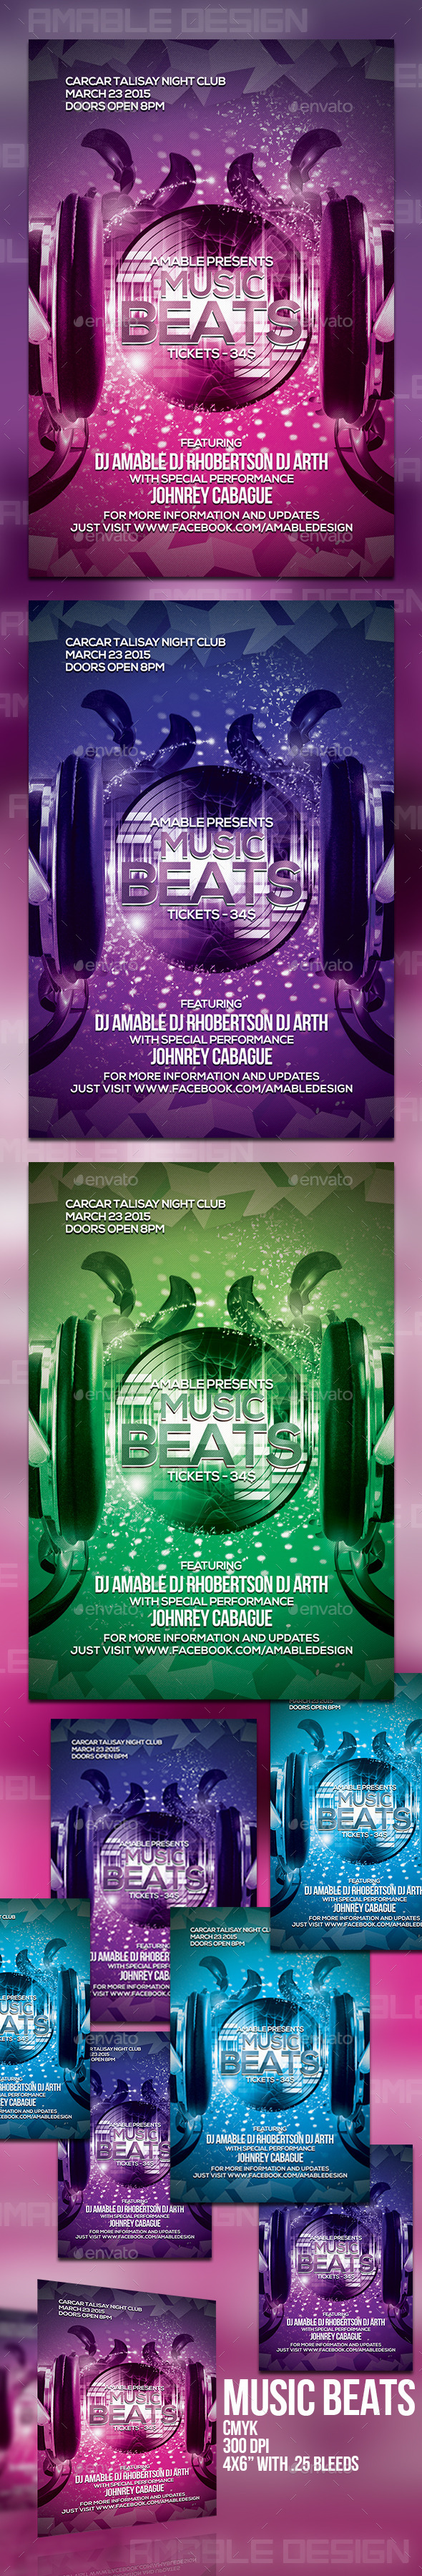 GraphicRiver Music Beats Flyer 10680029